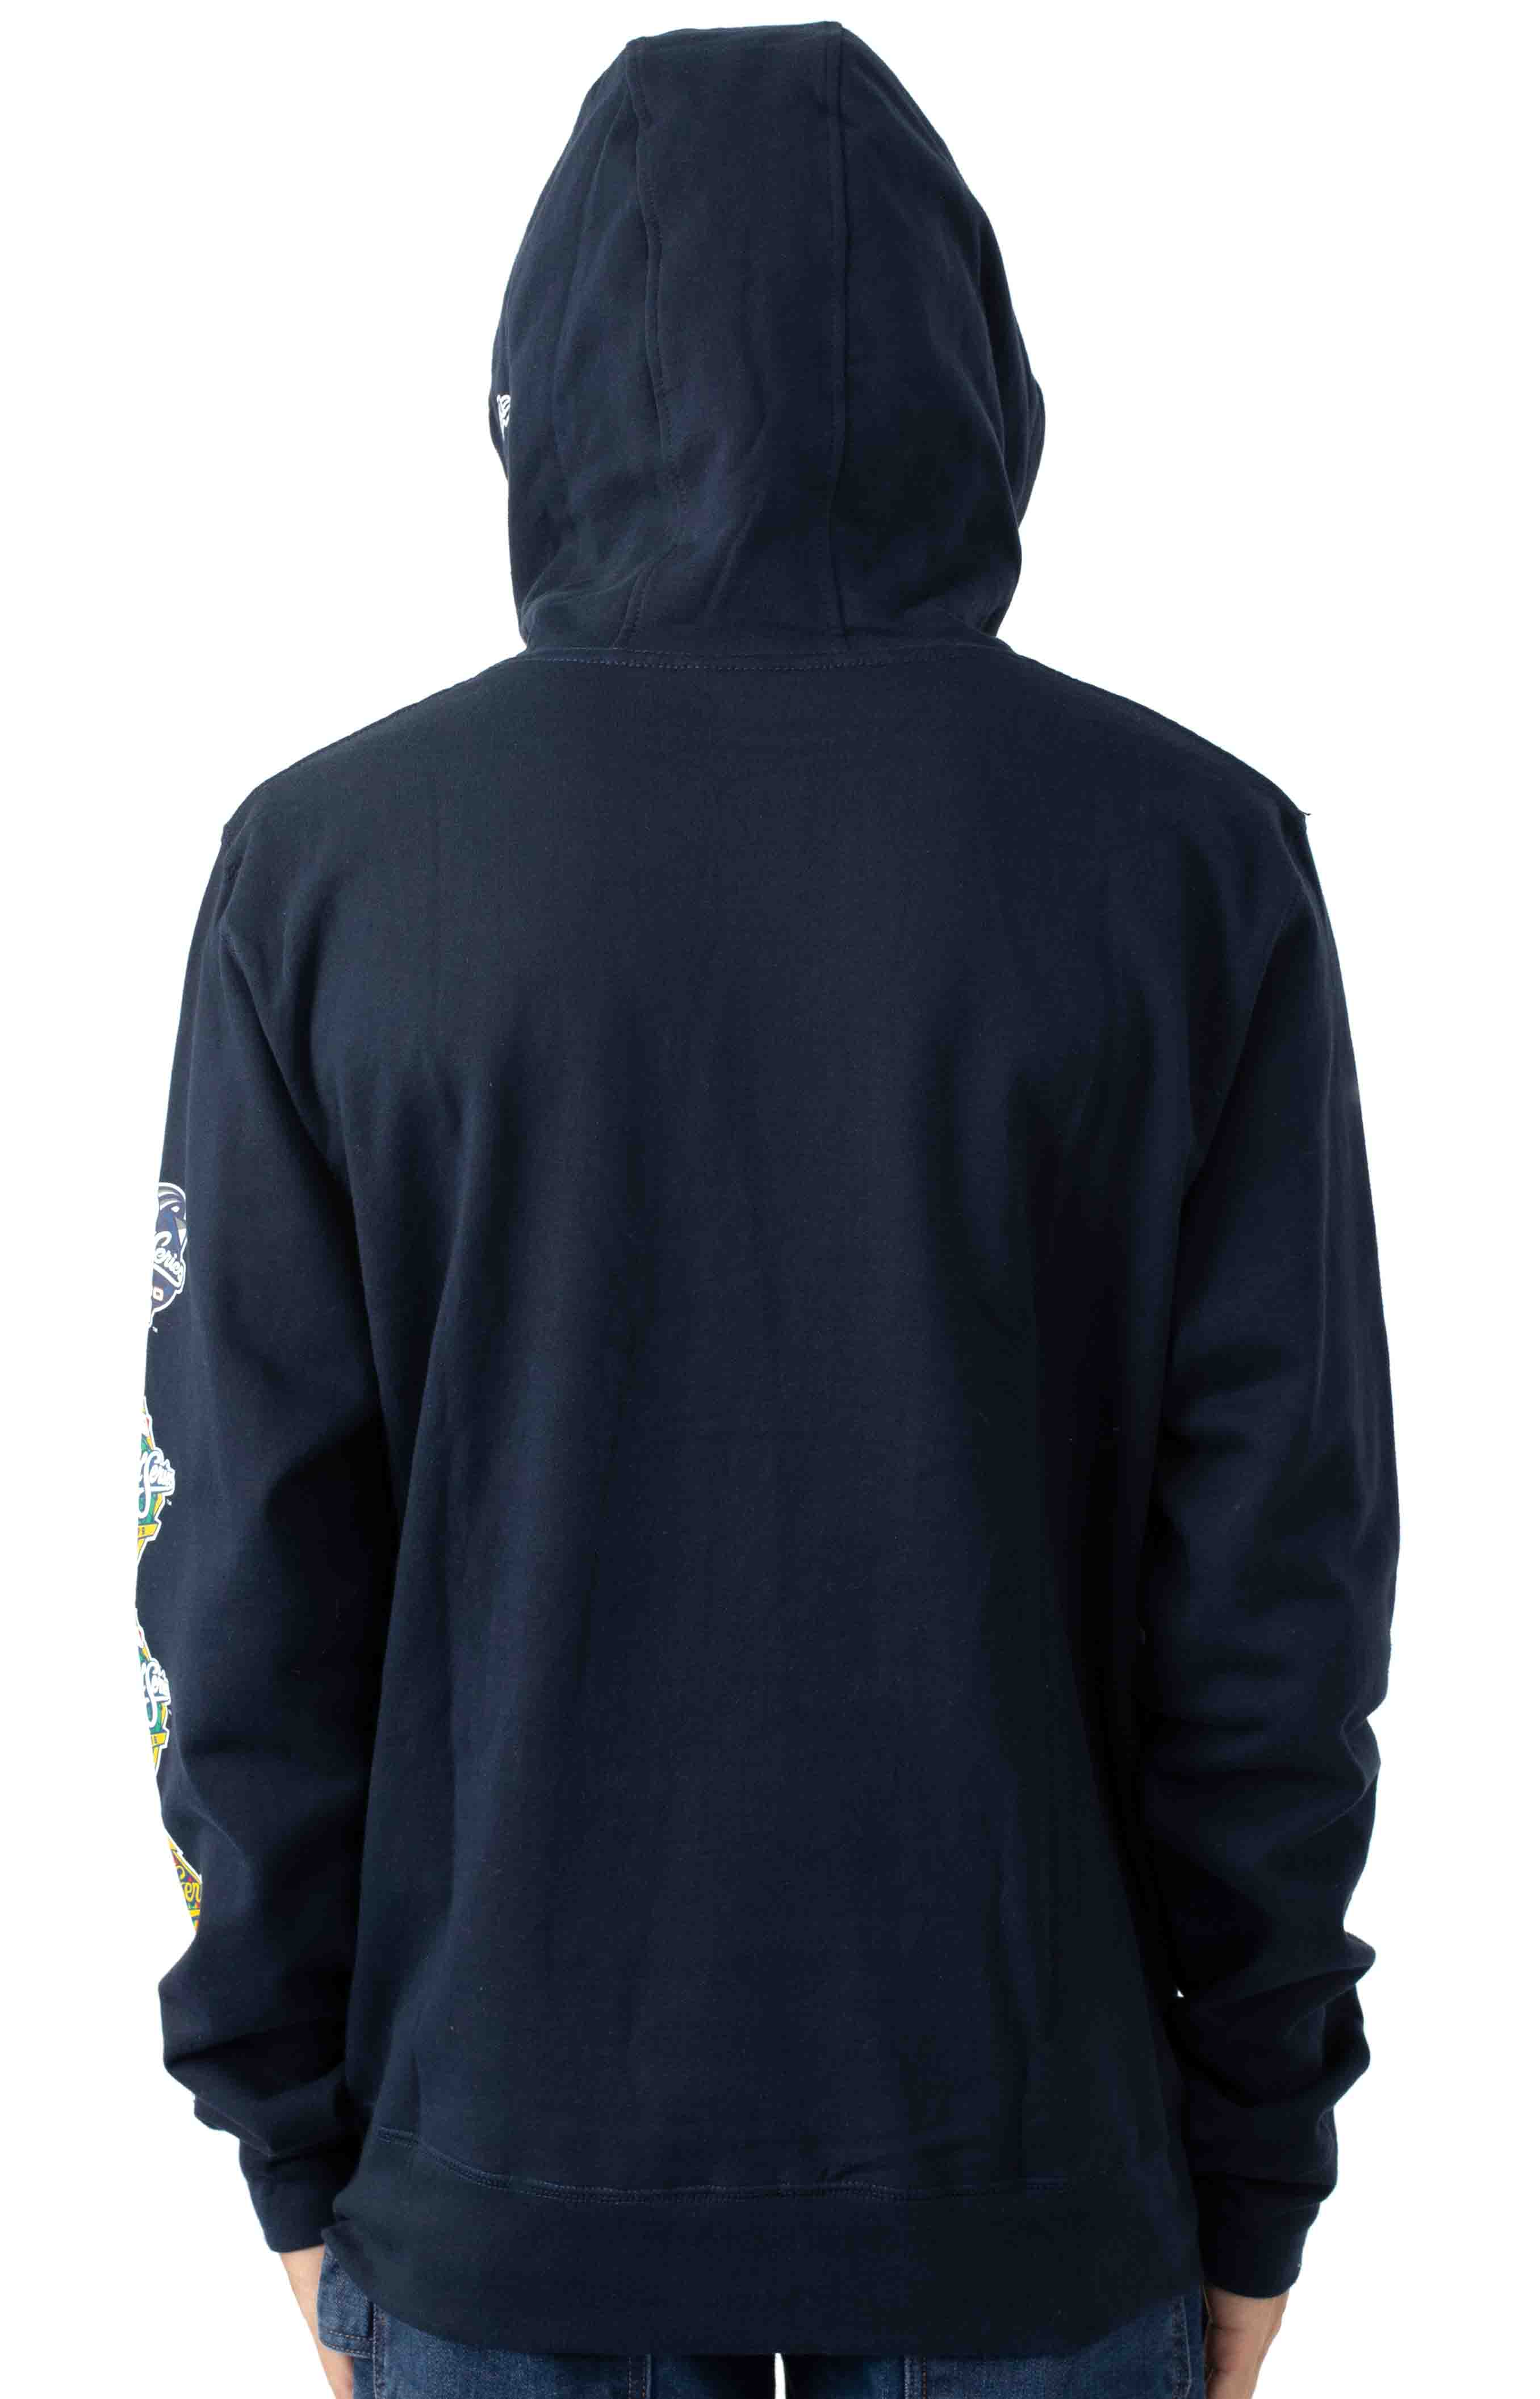 NY Yankees World Champions Pullover Hoodie - Navy 3